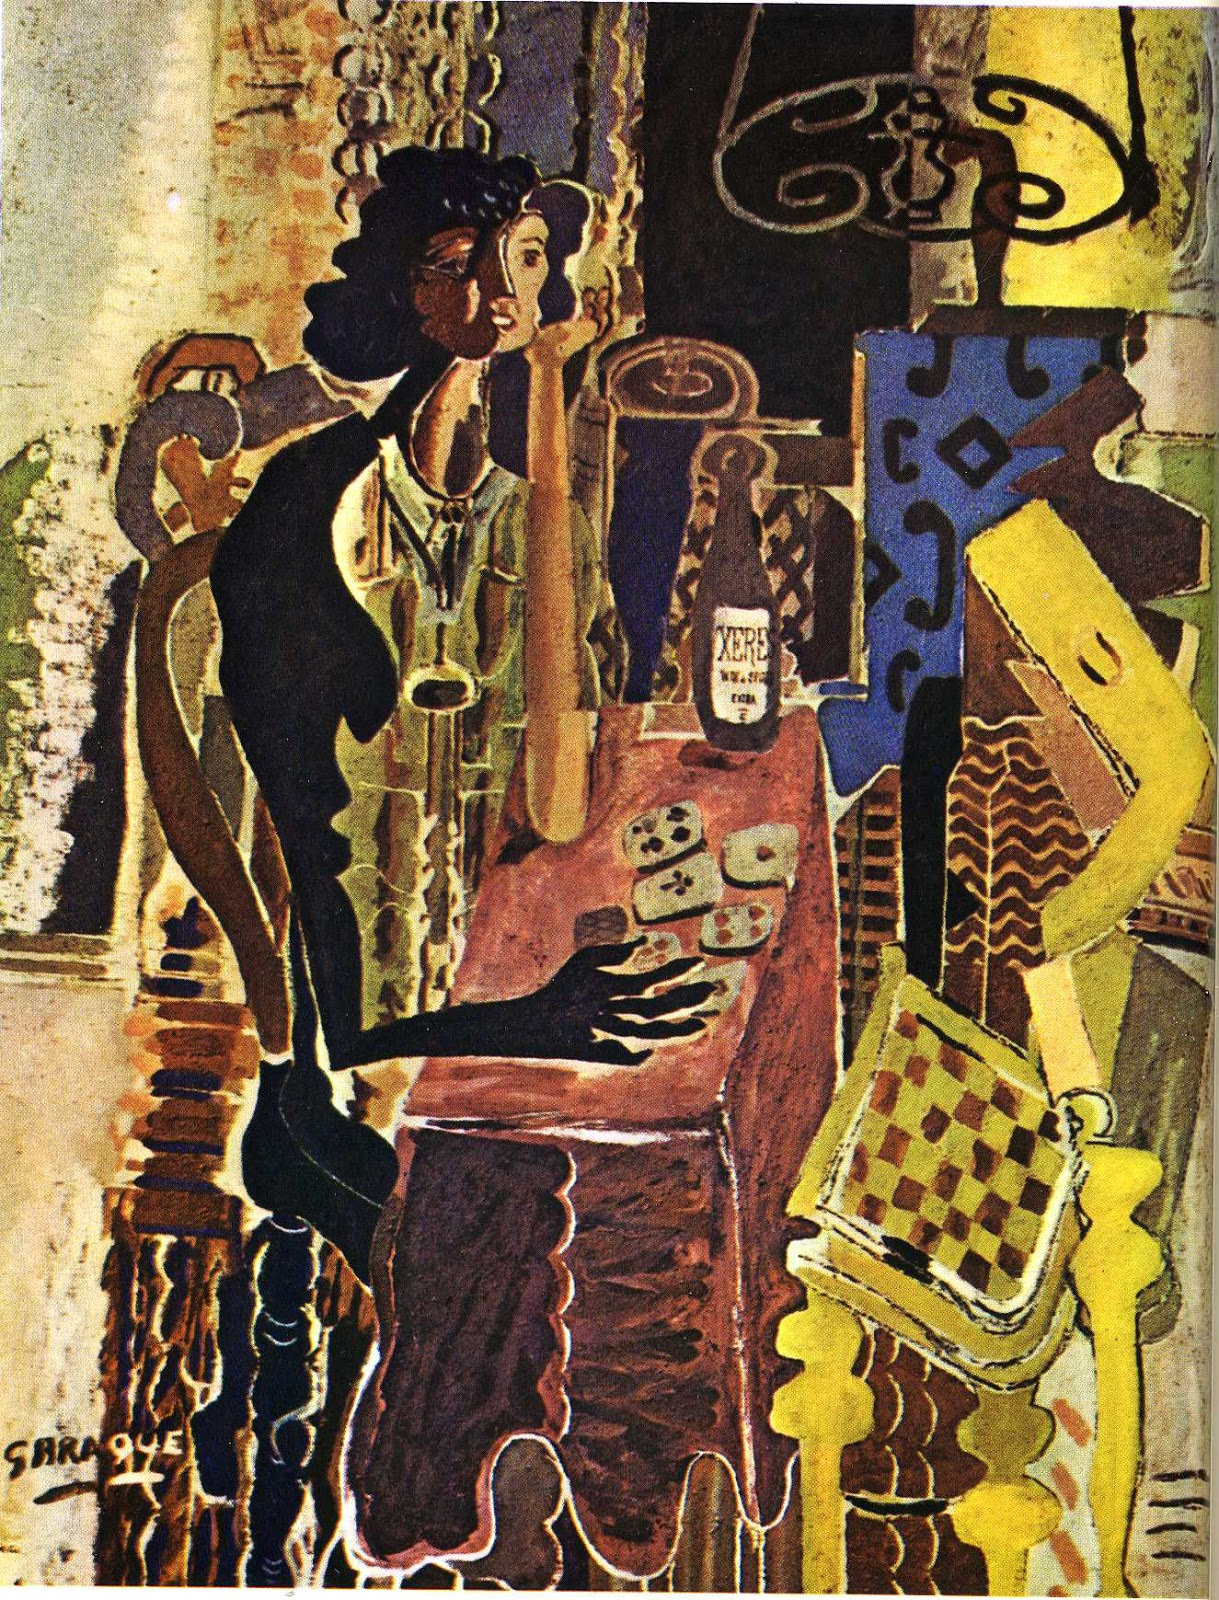 georges braque Why georges braque considered one of the most important artists of the 20th century, georges braque's prints are dynamic braque's cubism, still life, birds, and flowers speak to change and.